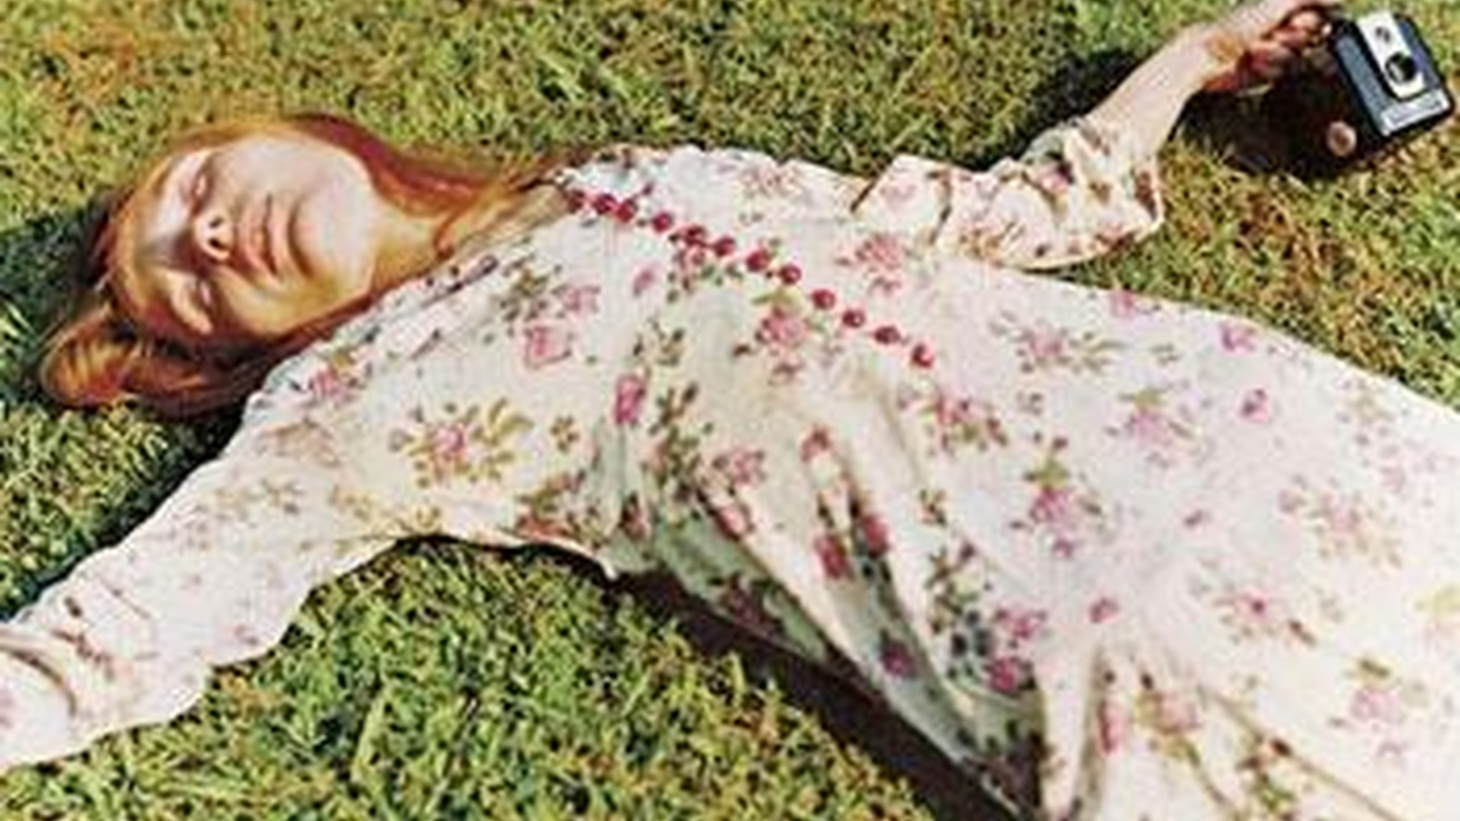 Nothing, absolutely nothing happens in the world captured in the photos by William Eggleston. But if you take a deep breath and allow yourself the luxury of slowing down, then his photos will start to whisper and maybe even sing to you their irresistible songs...